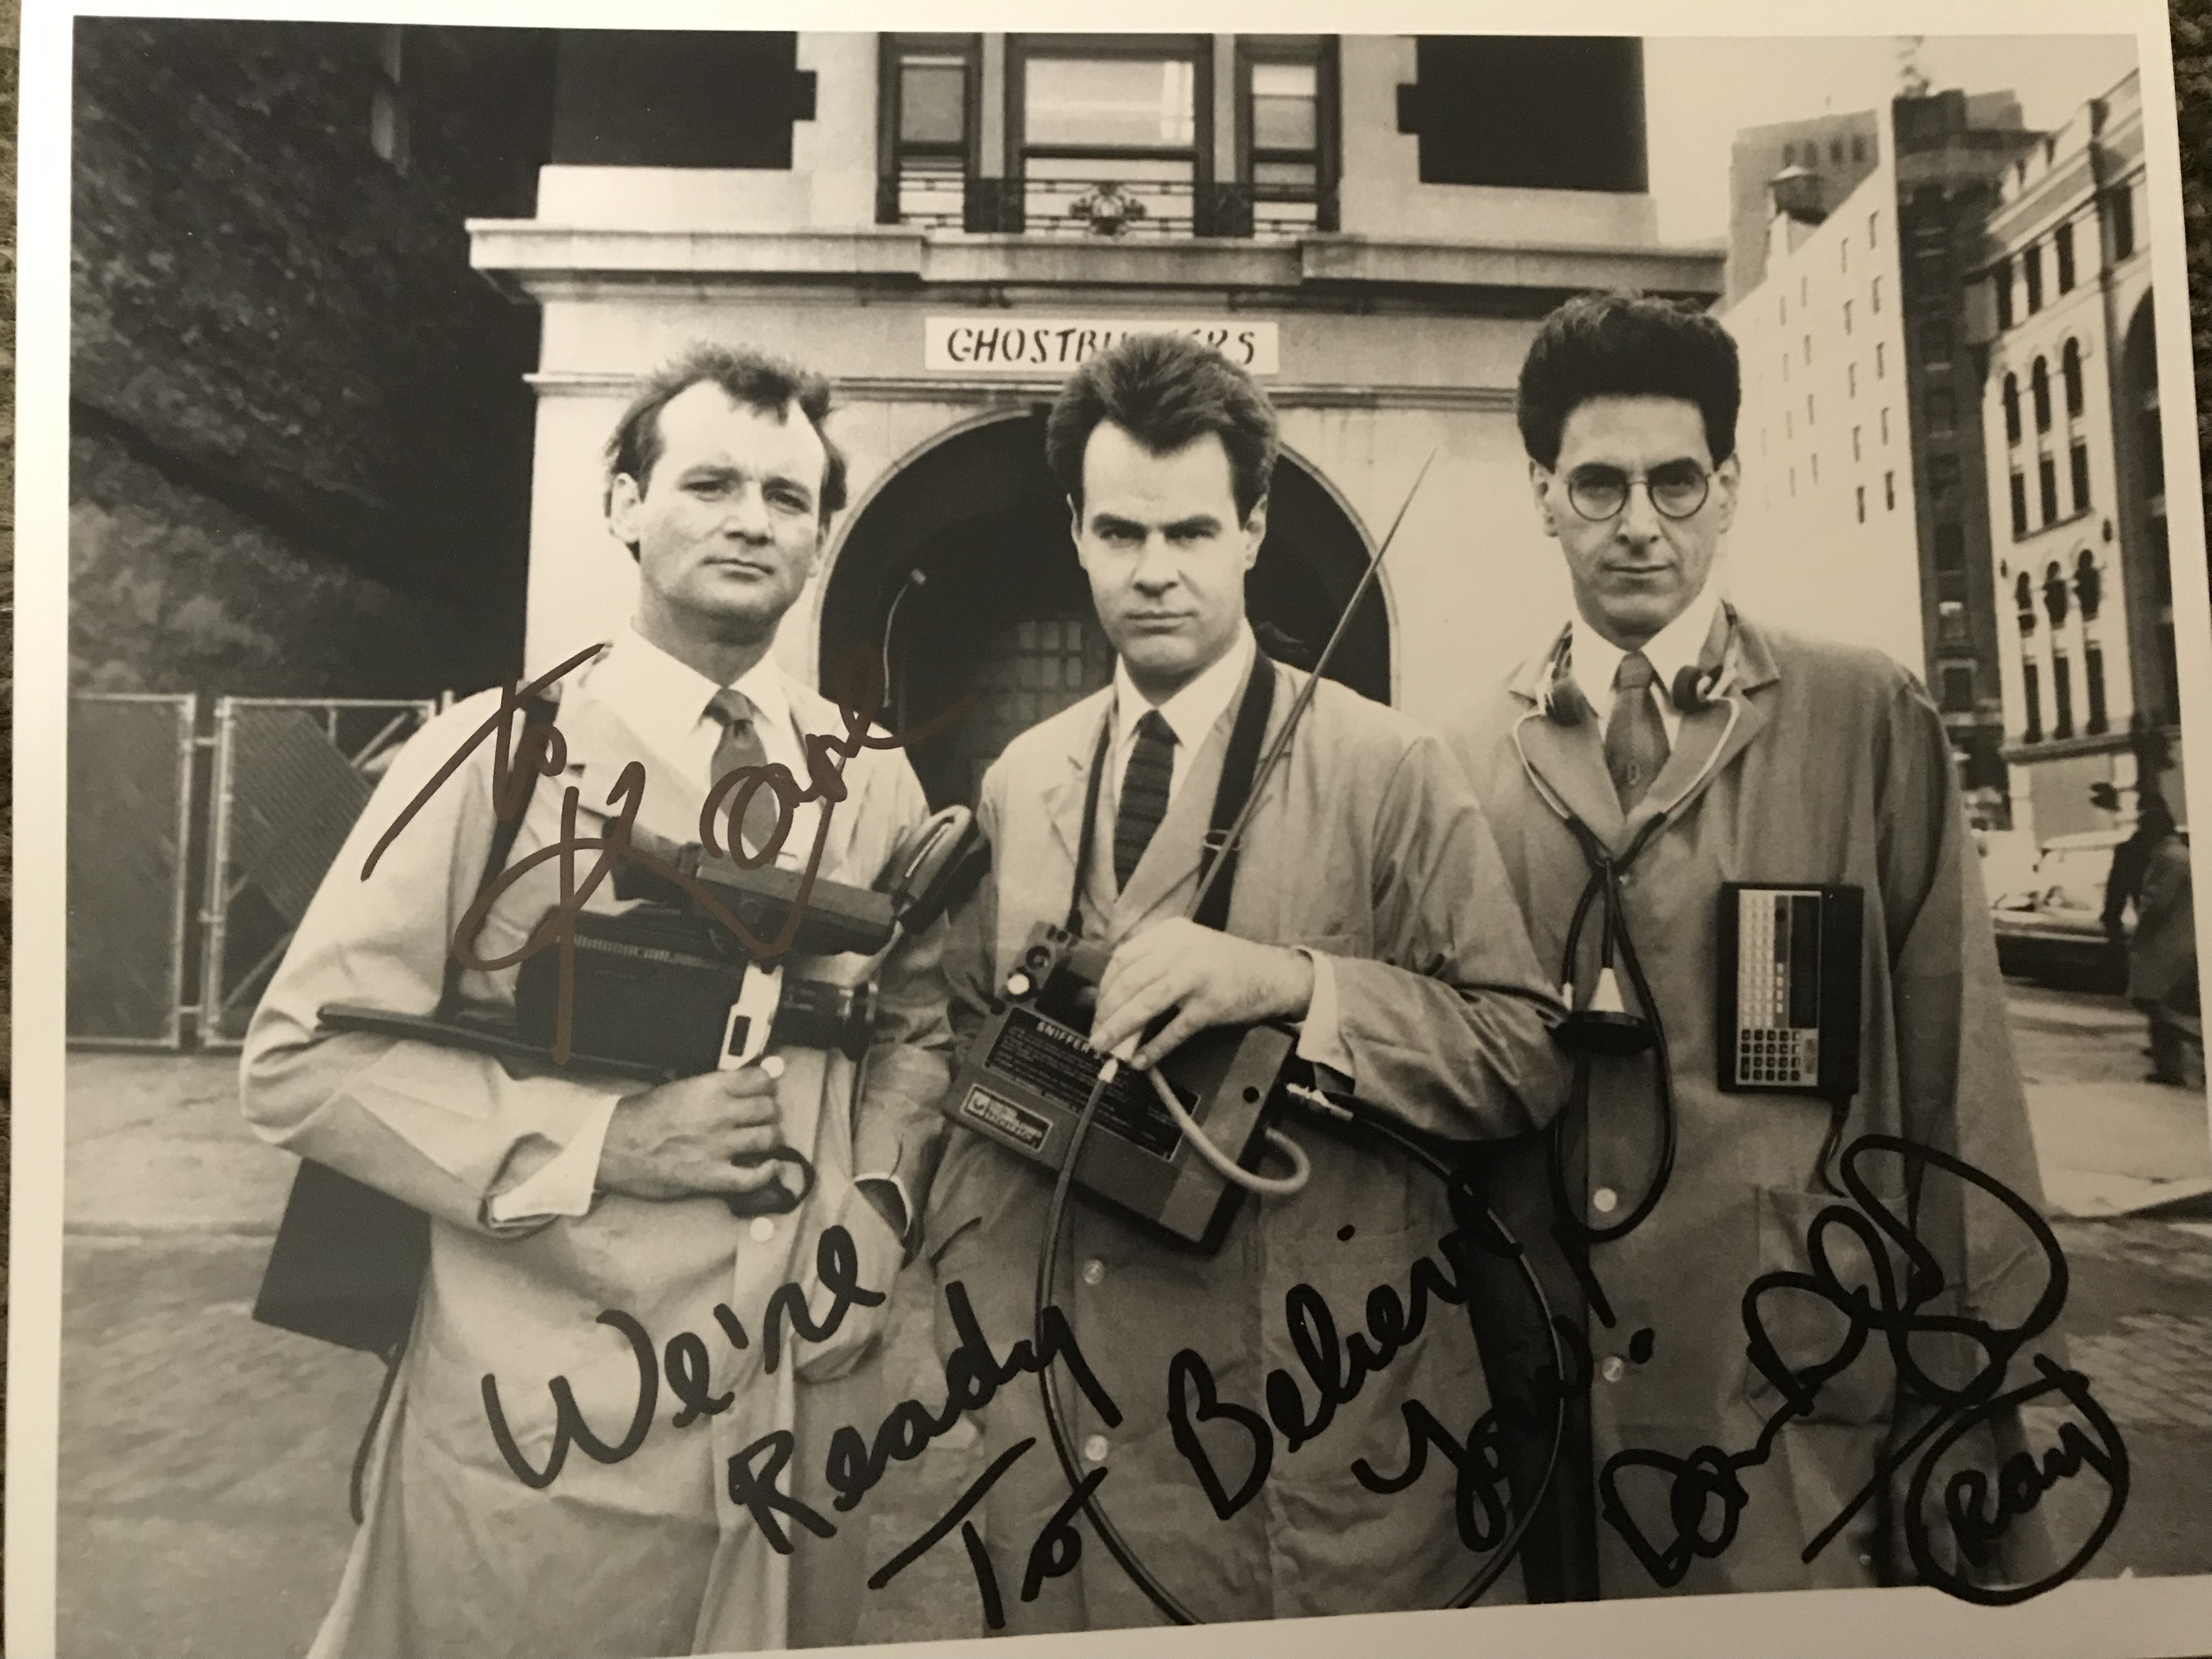 A GIFT FROM DAN AYKROYD